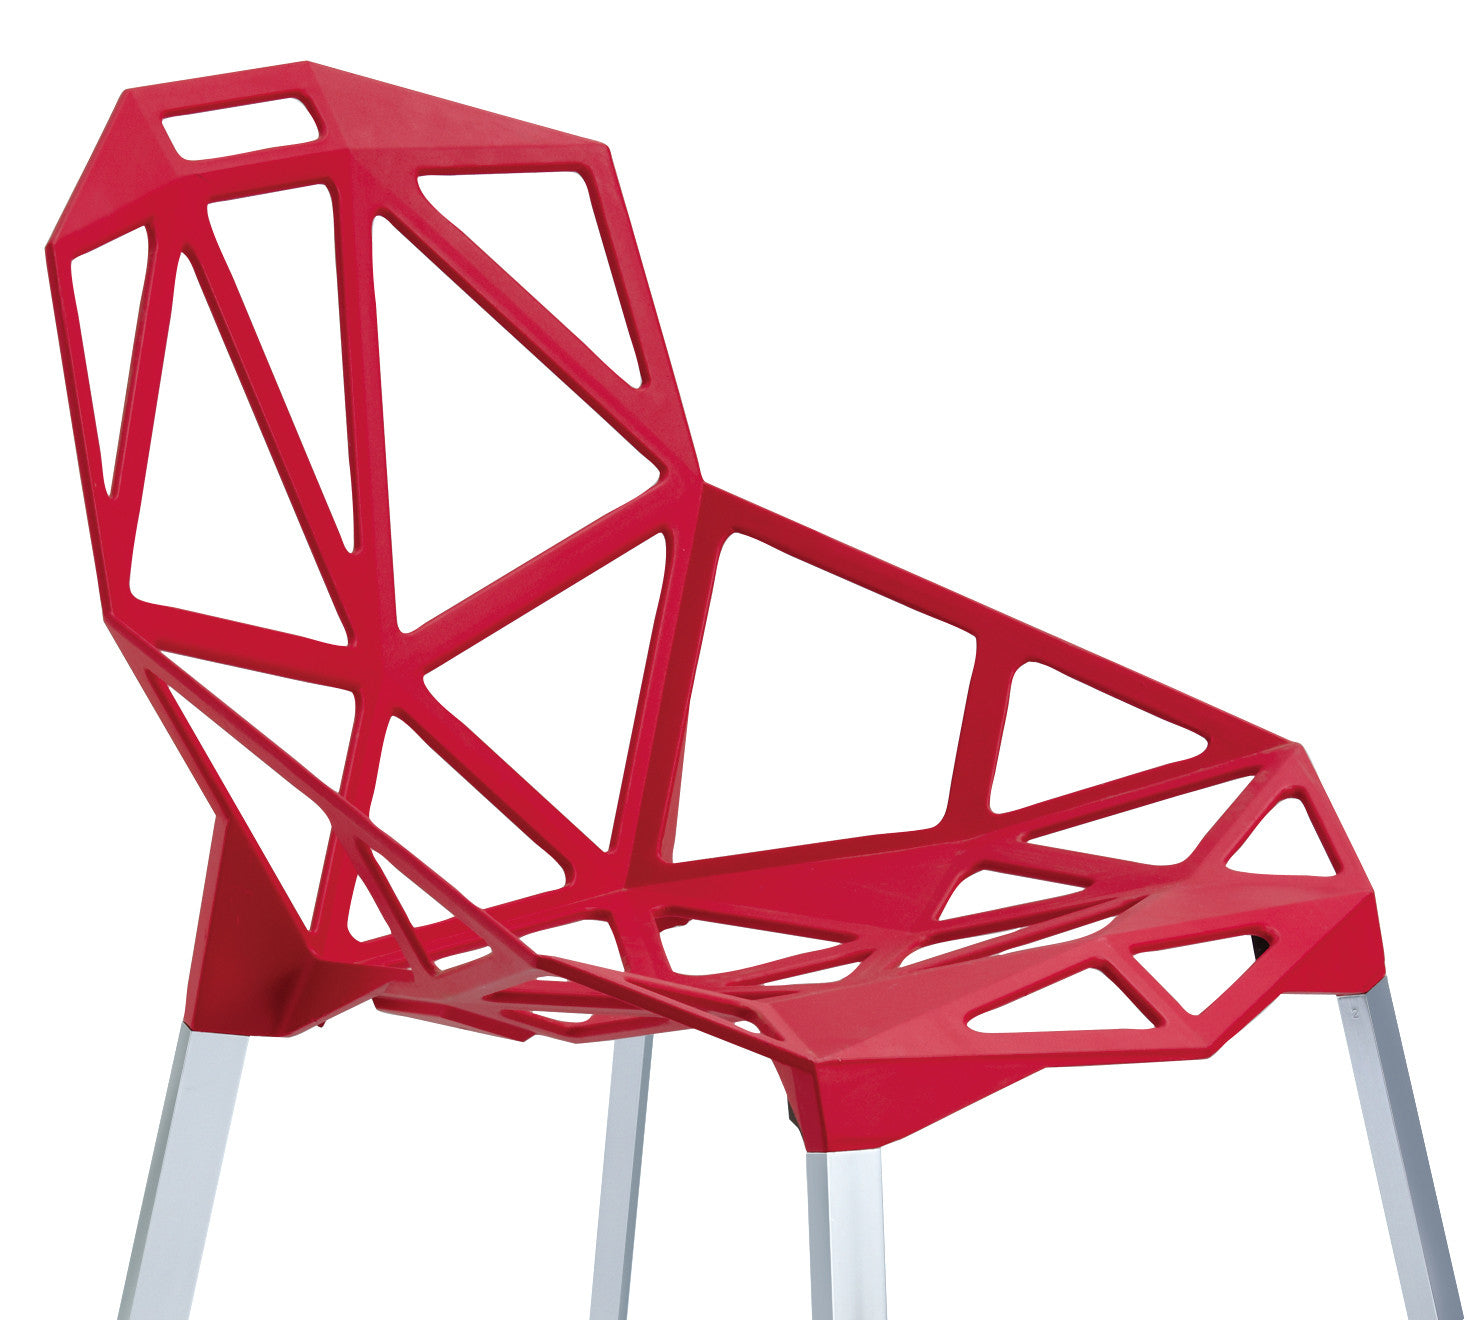 Chair 5 - Metal Legs